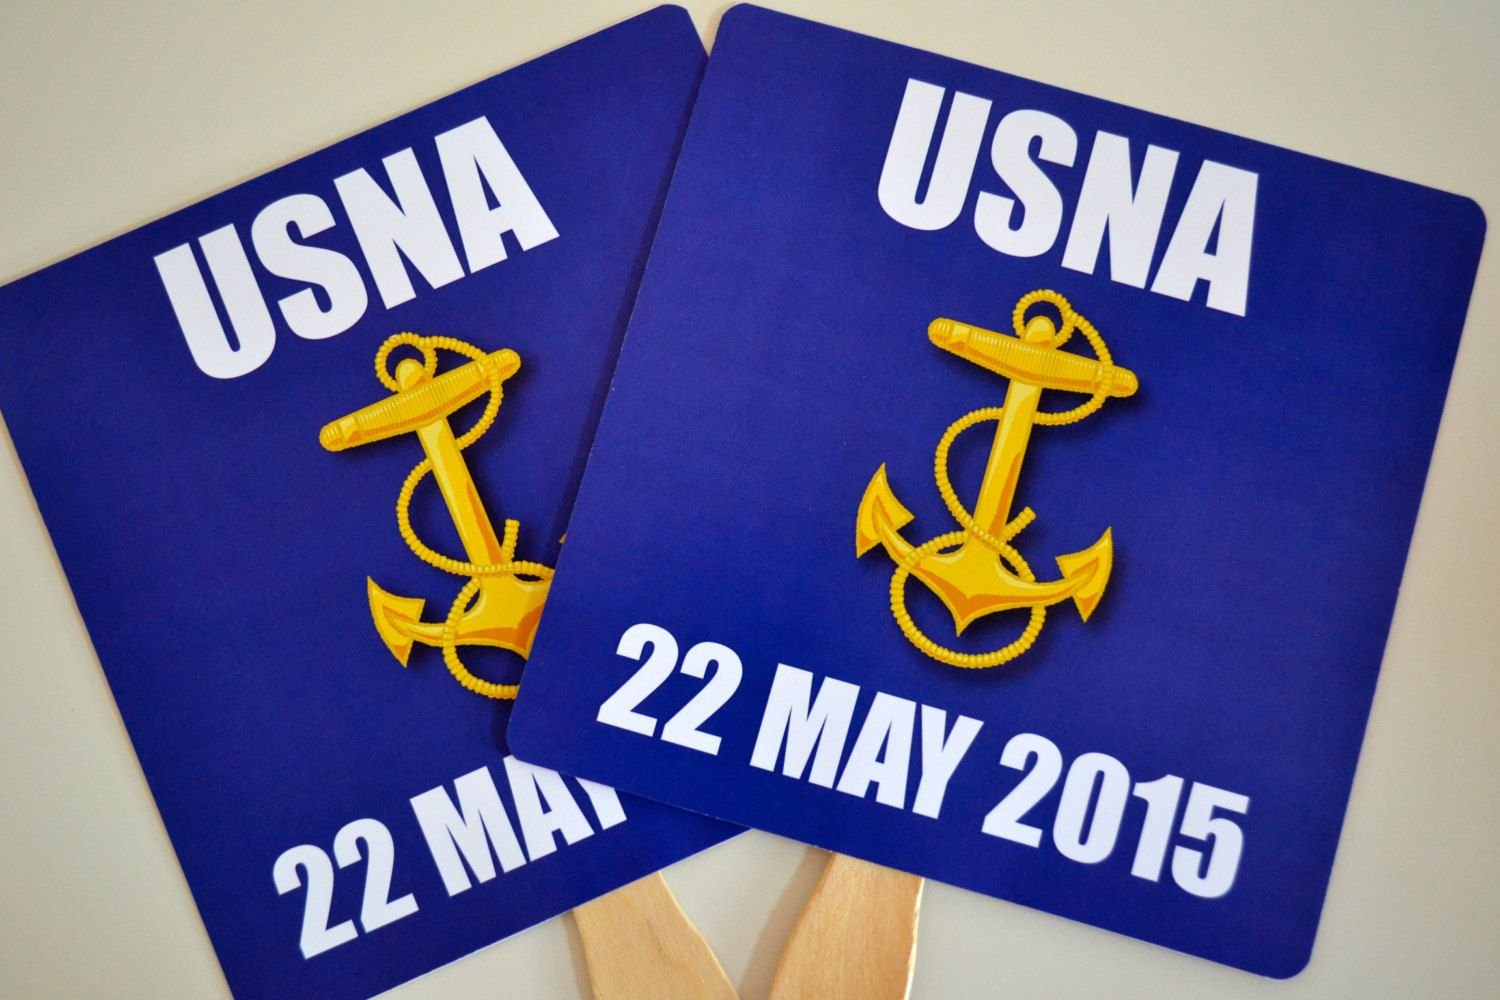 6 7x7 Square Rounded Corners USNA 2019 USA Naval Academy